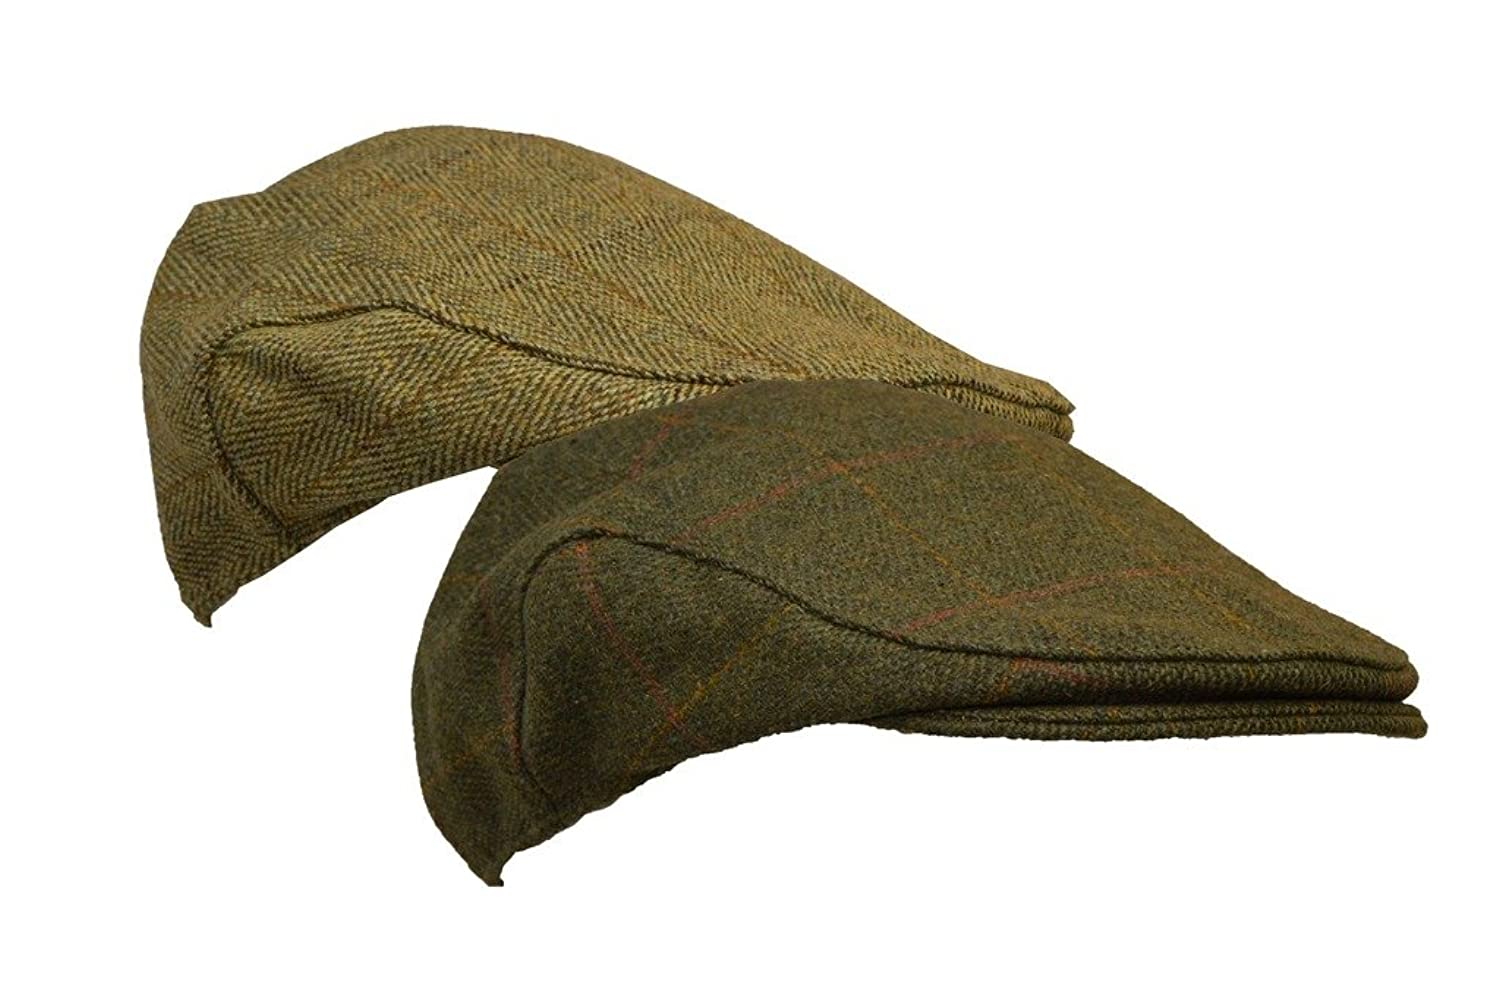 Men's Vintage Style Hats Walker and Hawkes Mens Derby Tweed Flat Cap Hunting Shooting Countrywear Hat $22.02 AT vintagedancer.com